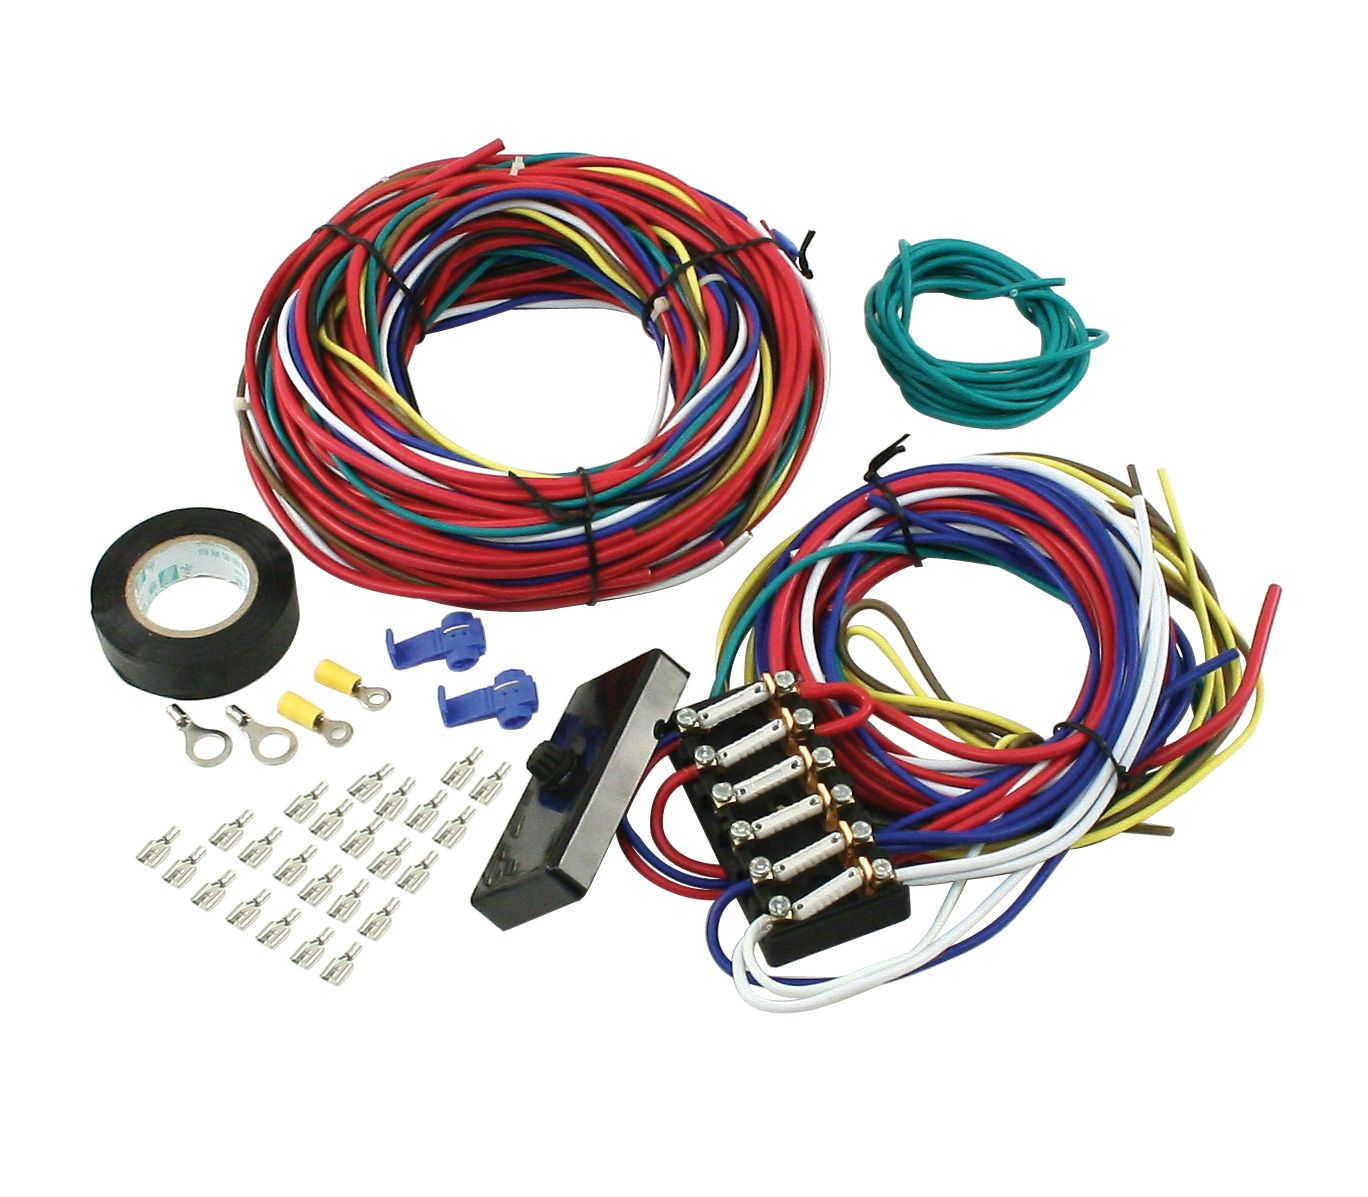 vw bug complete wiring harness universal wiring harness dubwerx explore vw parts sand rail and more universal wiring harness